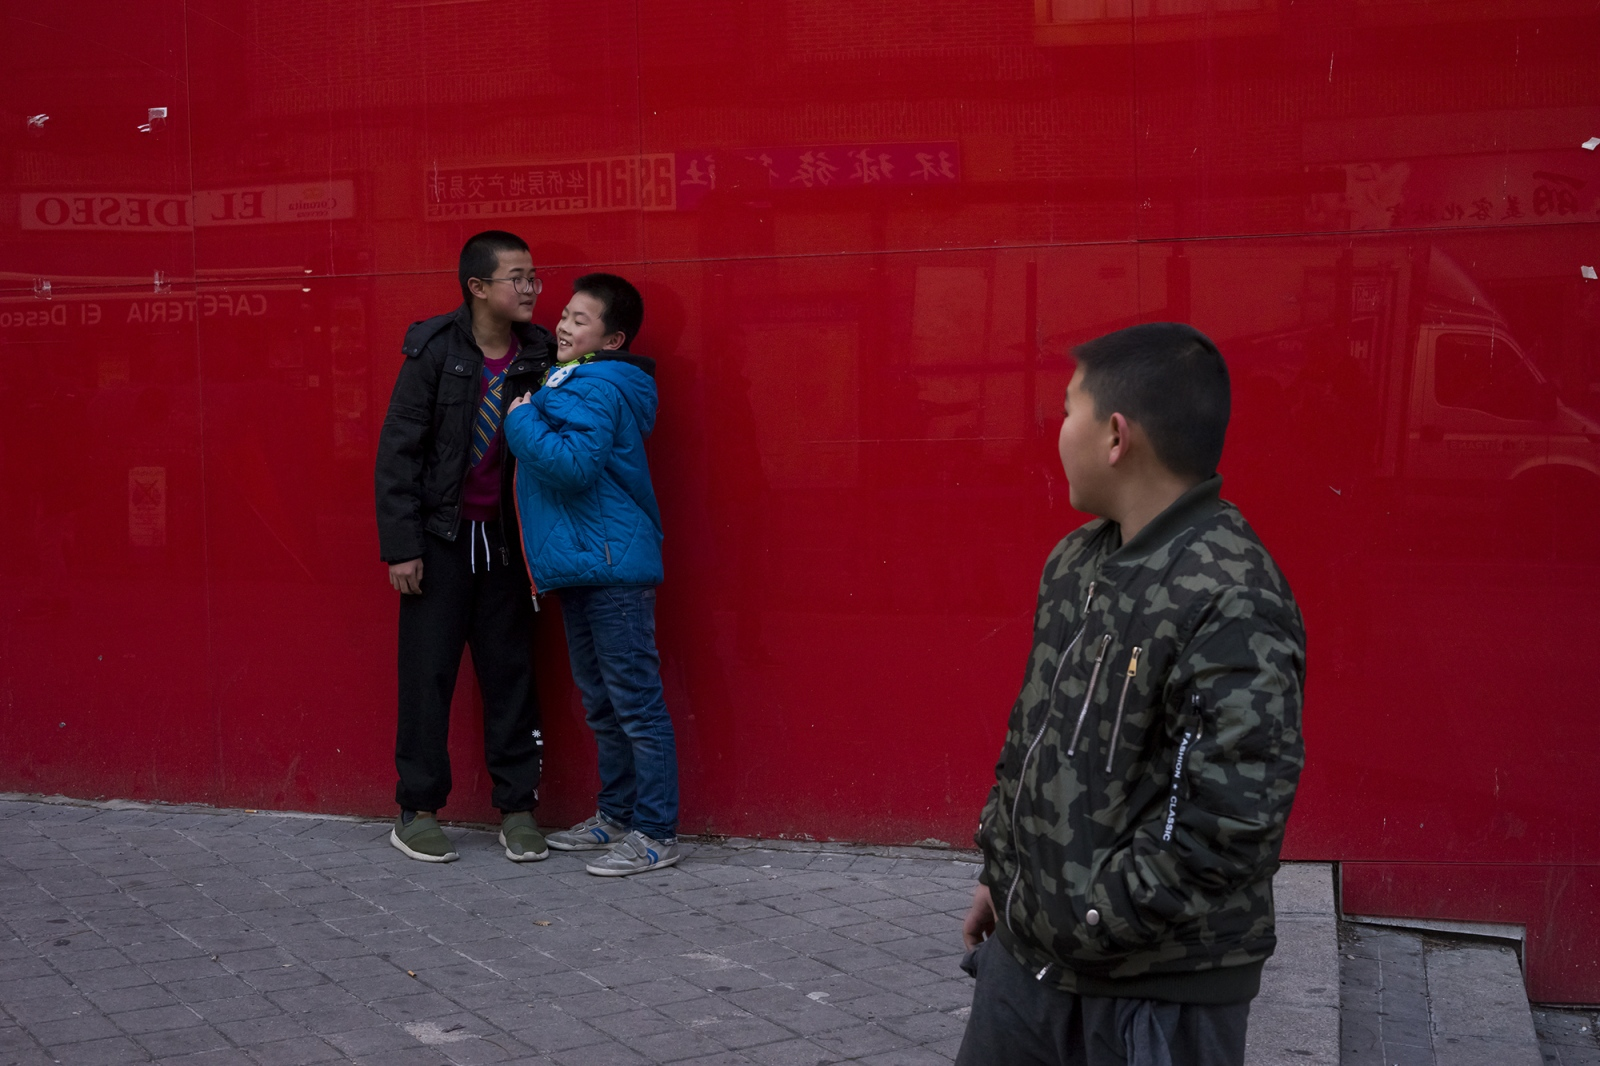 Art and Documentary Photography - Loading Juan_Rodr__guez_Morales_22.jpg